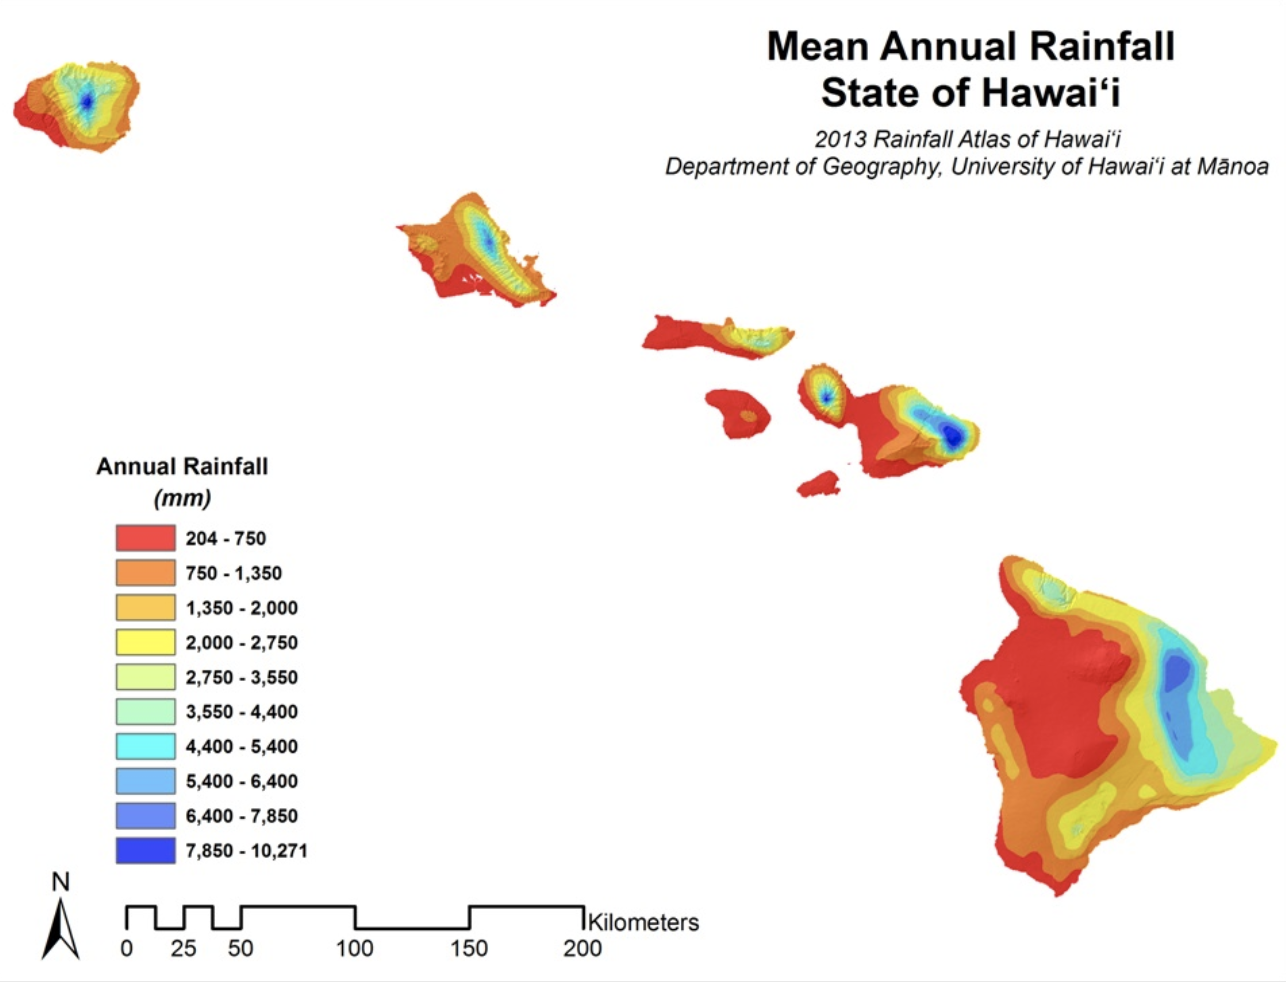 """Some leeward-coast cities like Kailua-Kona (west coast, big island) are exceptionally dry and report monthly rainfall of 2"""" while eastern facing Hilo (big island, windward-coast) reports 14+ inches of rain per month, and 30+ inches at higher elevations monthly."""